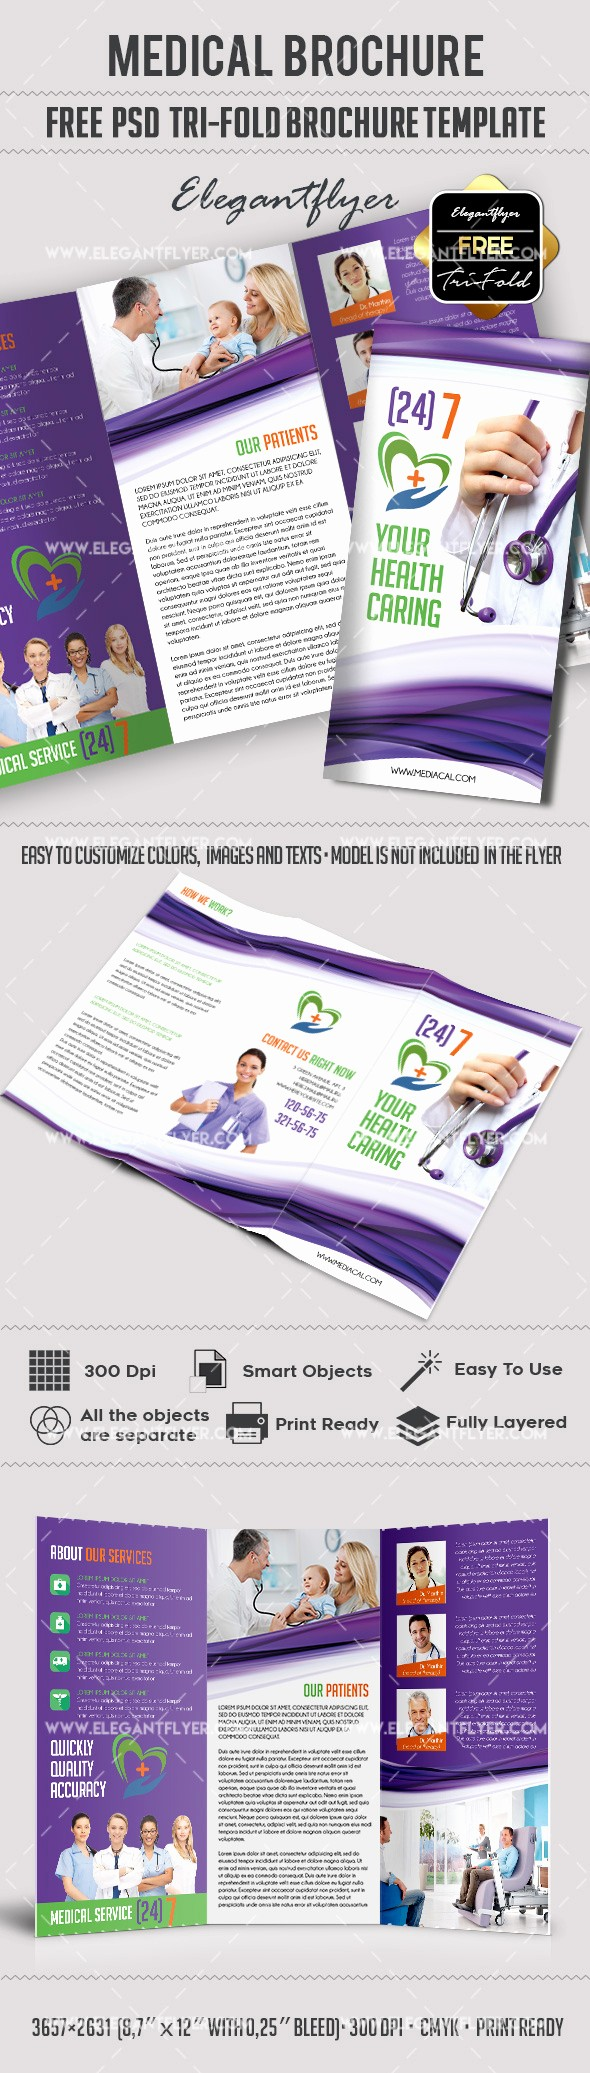 Healthcare Brochure Templates Free Download Inspirational Download Medical – Free Tri Fold Psd Brochure Template